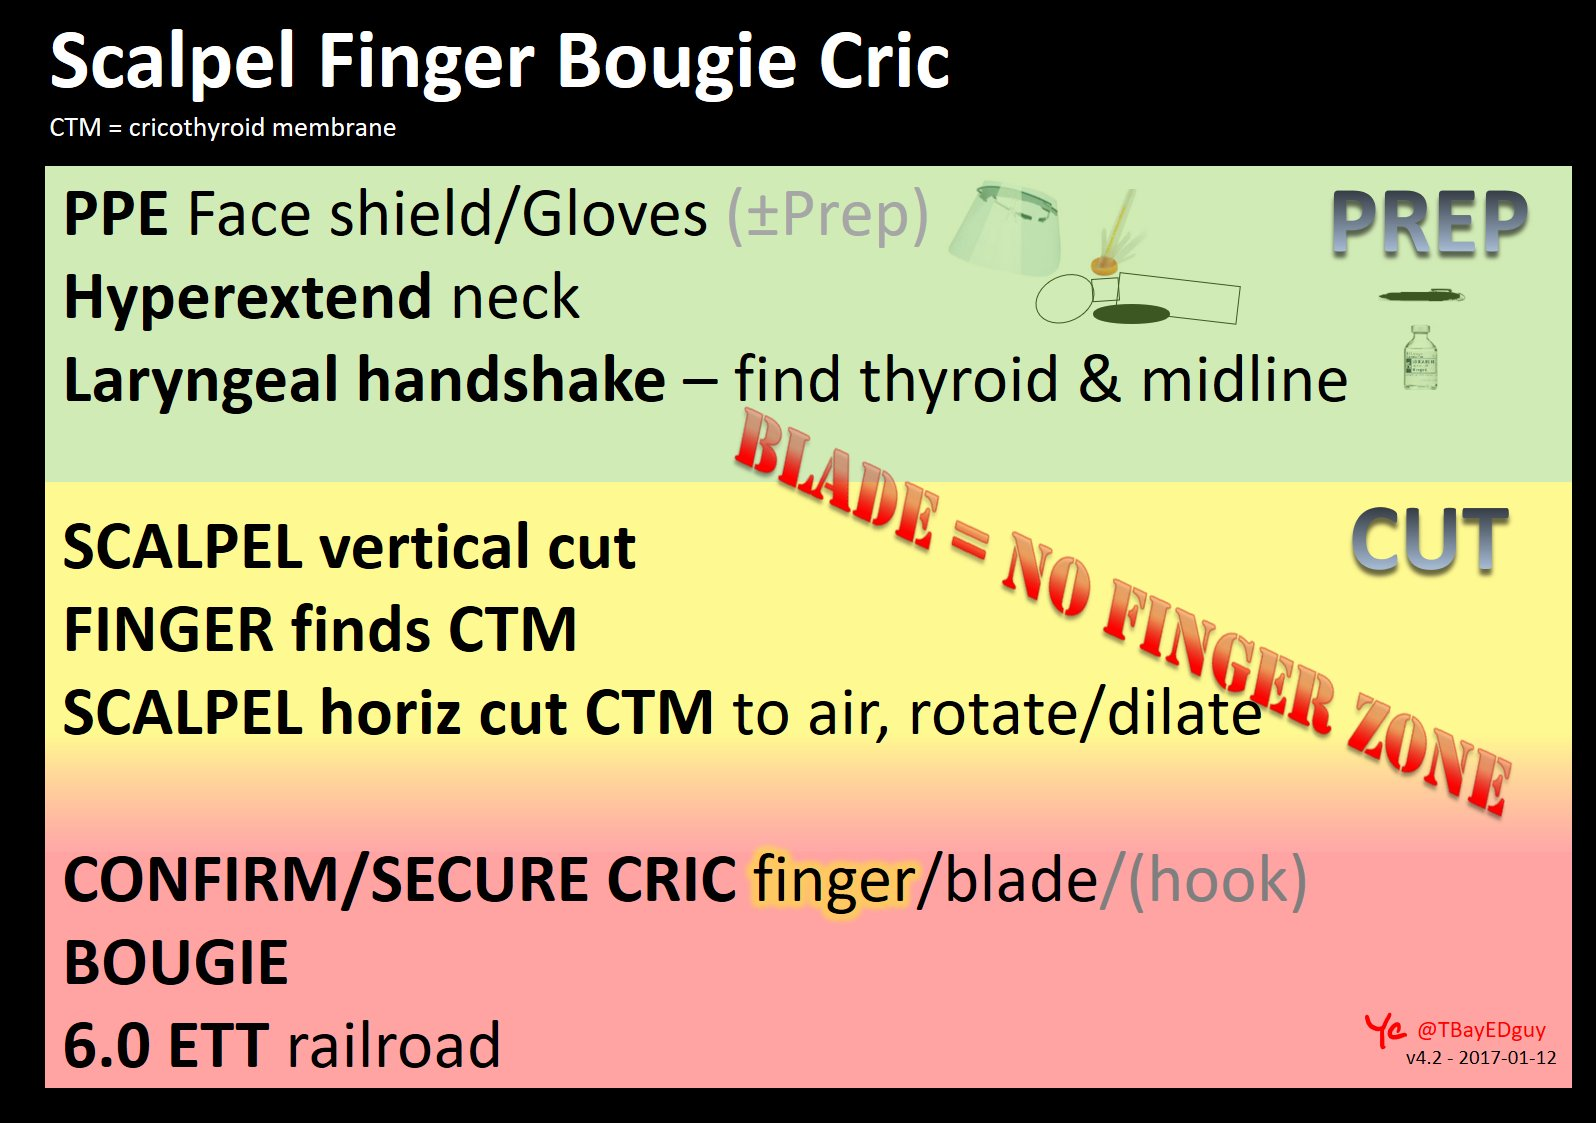 Scalpel Finger Bougie Cricothyrotomy Flash Card 2017 v 4.2 HT @emcrit input and HT @EmICUcanada for inspiration and shoutout :) https://t.co/aUu4rzglwi